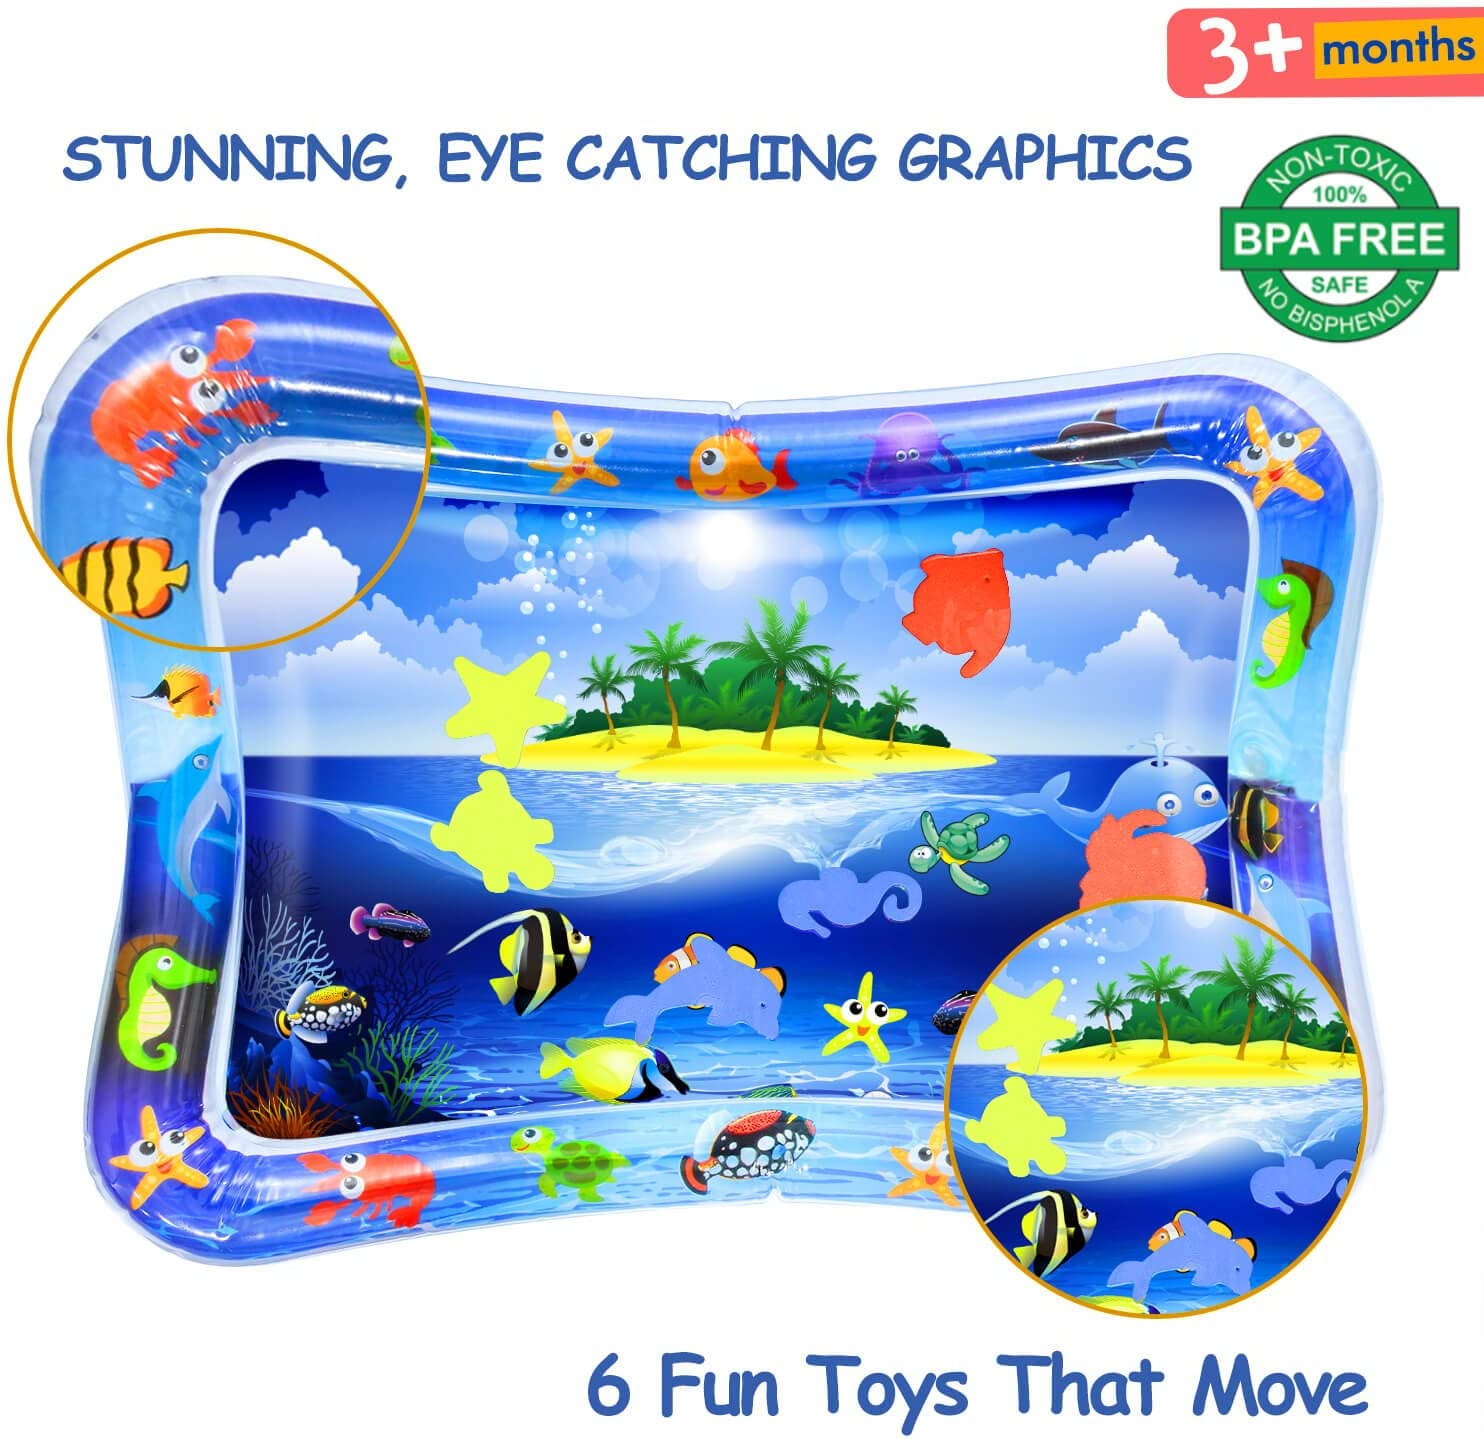 26 inch Infant Toys Baby Play Mat /3 Month Old Baby Toys Development Portable Baby Toys Tummy Time Baby Water Mat for 3//6 Months